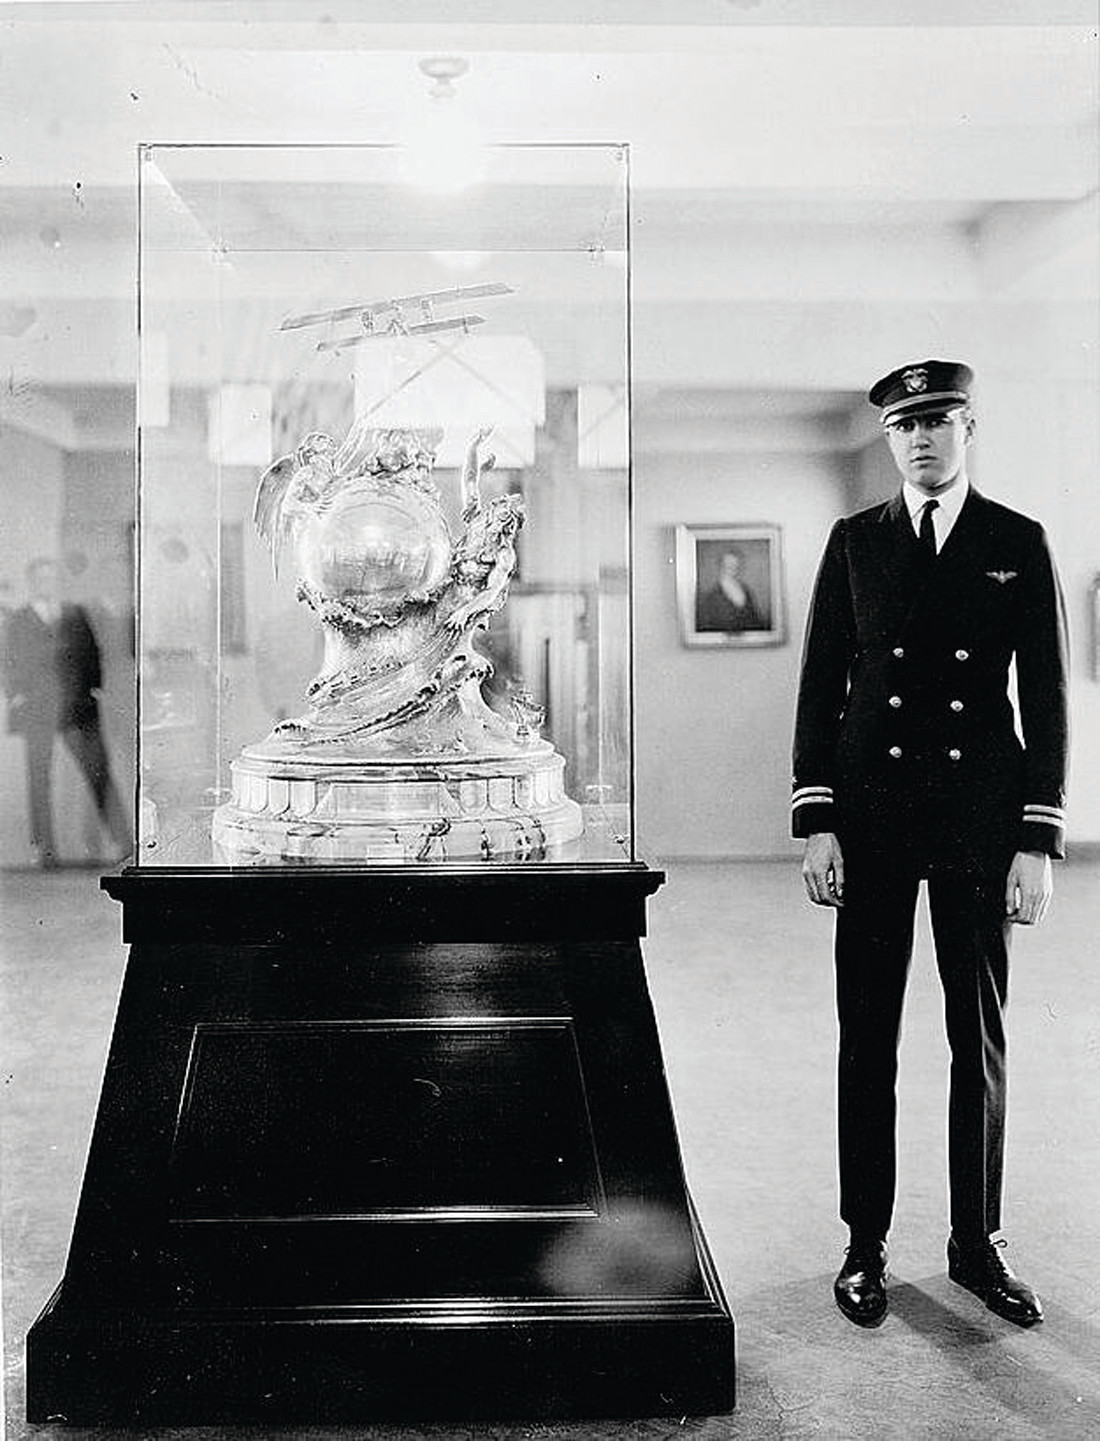 AWARD-WINNING PILOT: Adolphus W. Gorton poses with the Curtiss Marine Flying Trophy he won in 1922